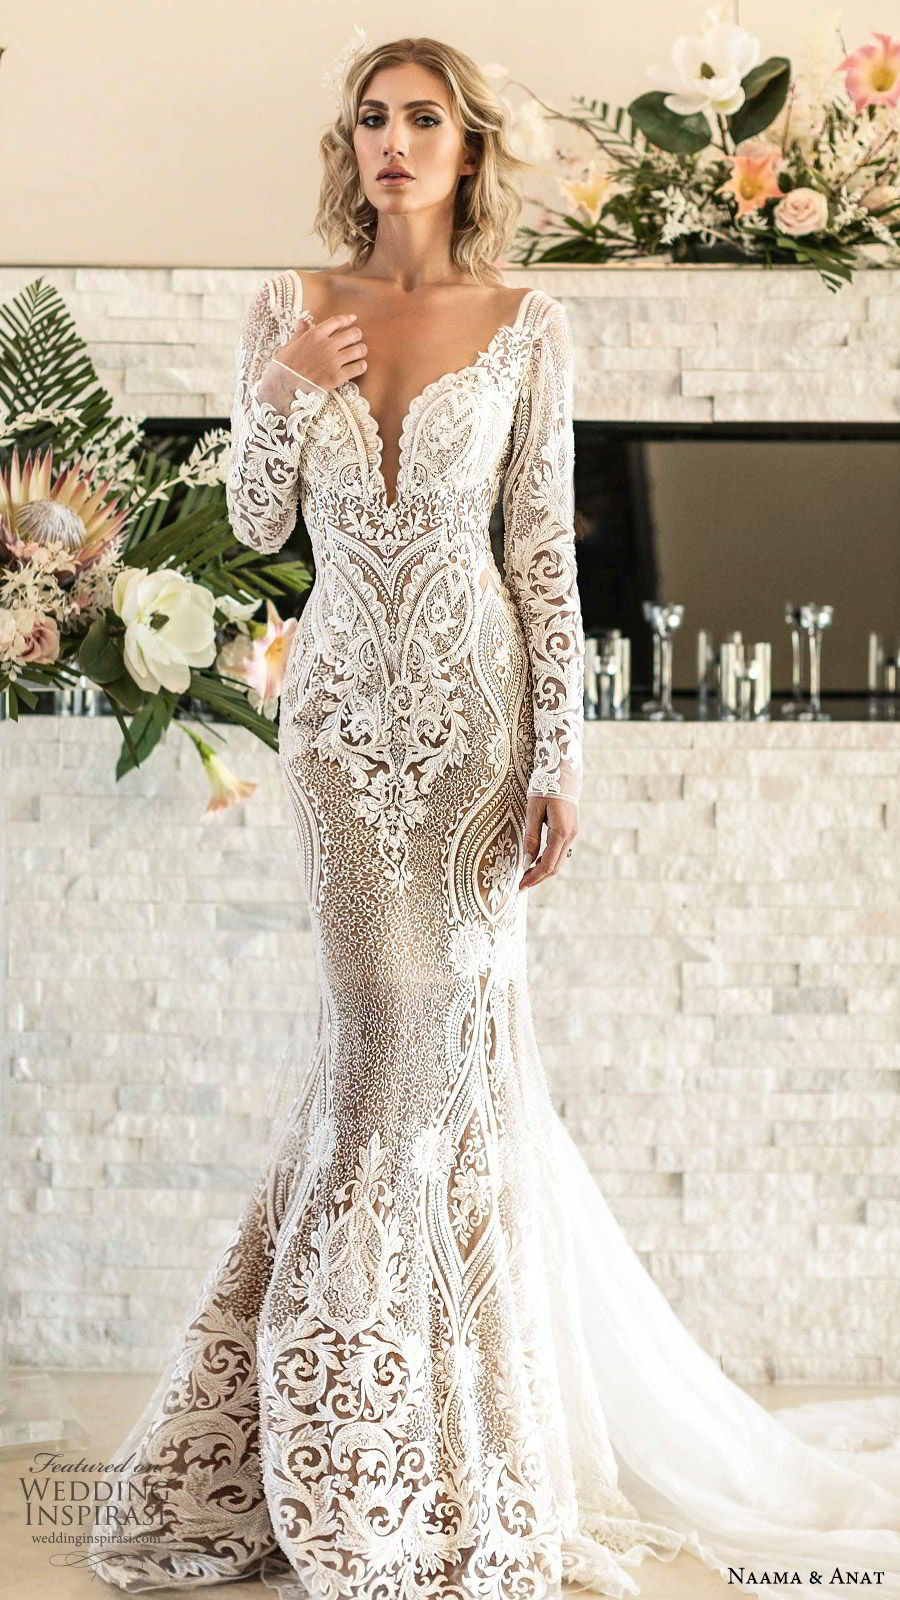 Modern Wedding Dresses 2020,Mermaid Wedding Dress 2020,